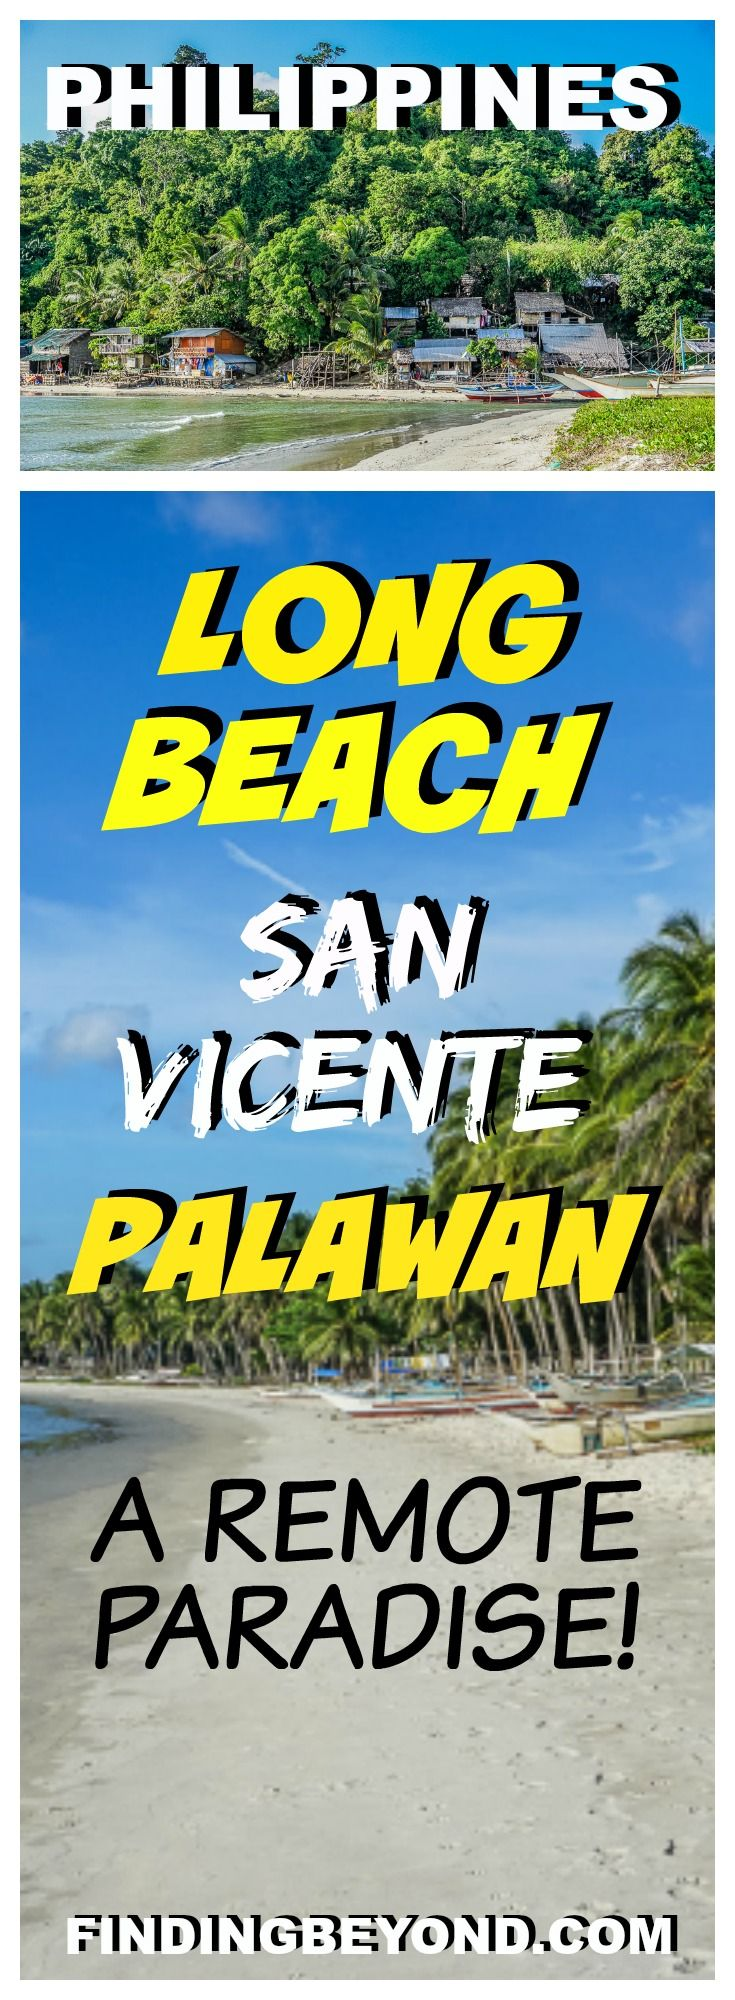 In this post, we quietly reveal a little known remote paradise, touted as the longest white sand beach in the Philippines - Long Beach San Vicente Palawan. | Best of Palawan | Where to visit in Palawan | Best beaches in Palawan | Palawan Highlights | Philippine Highlights | Remote beaches in Palawan | Best of the Philippines | Top attractions in the Philippines | Where to visit in the Philippines